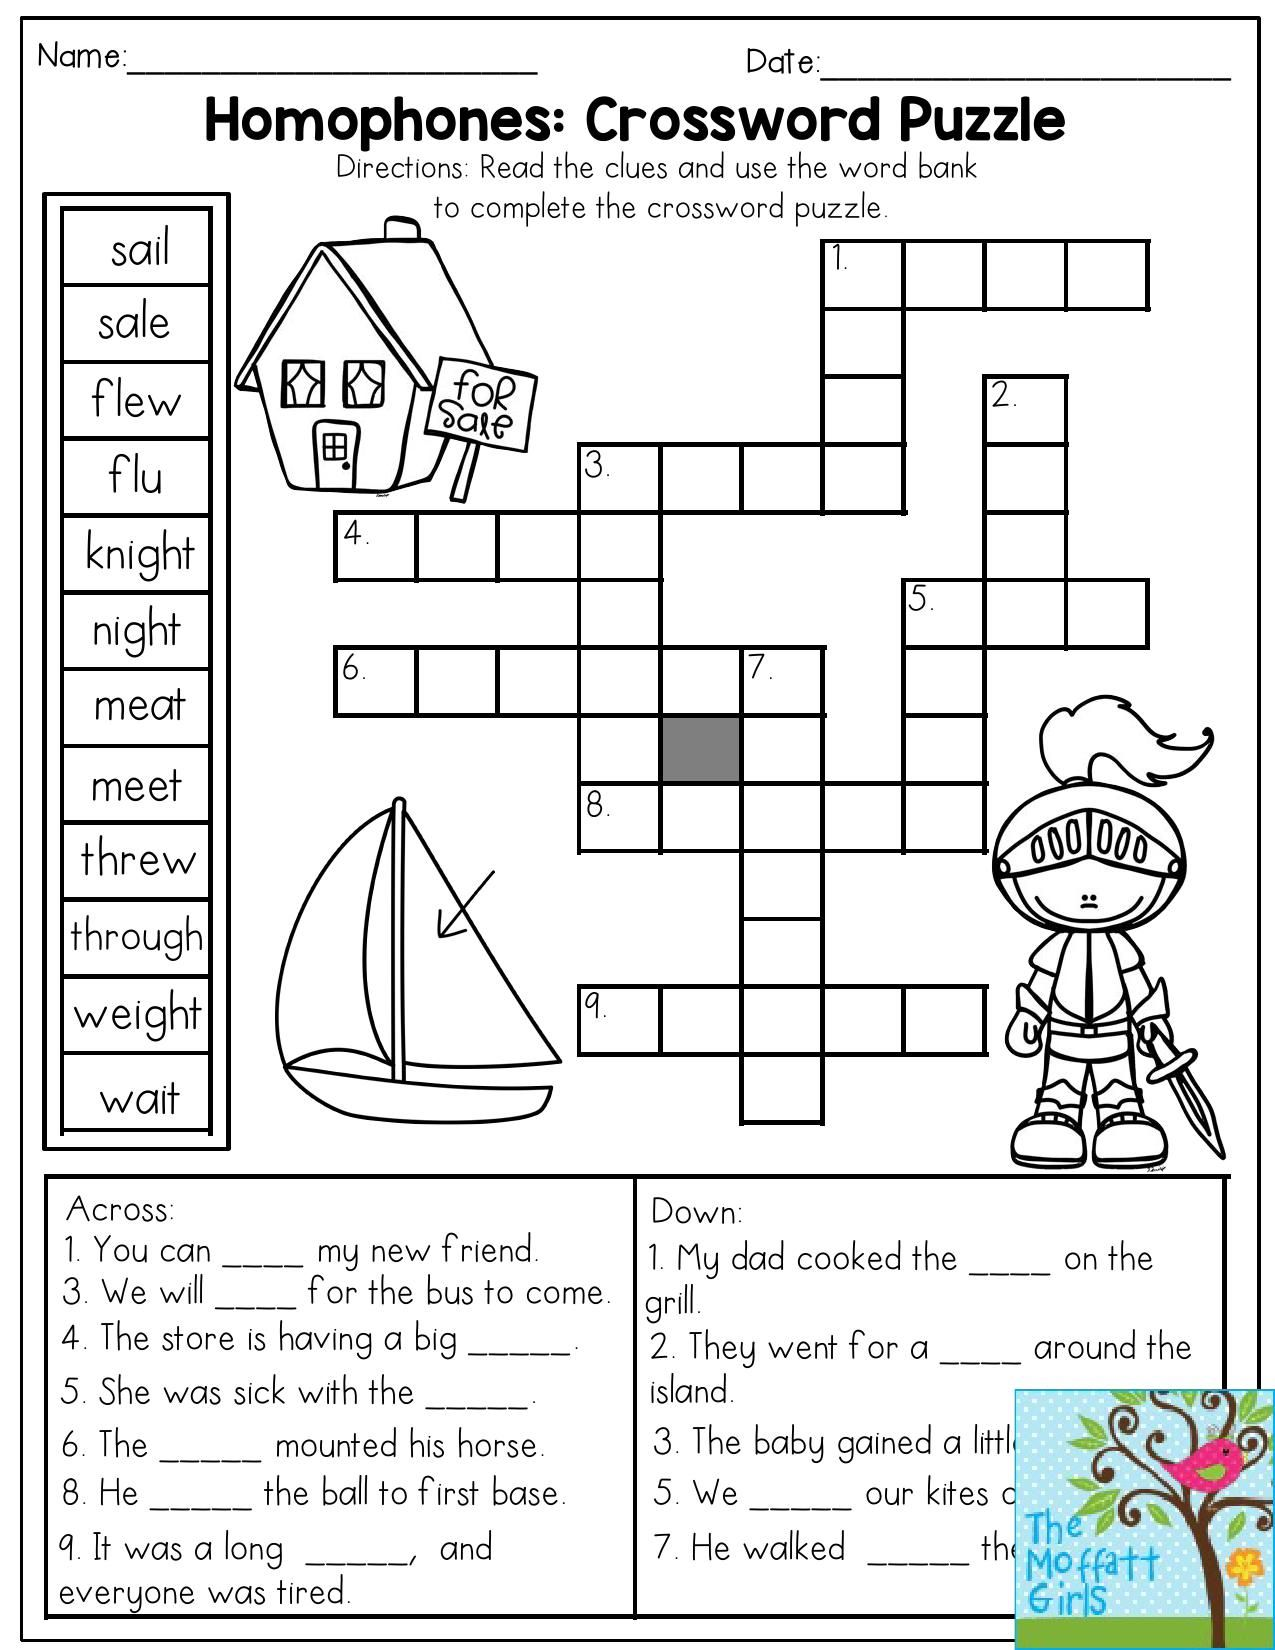 Homophones Crossword Puzzle Read The Clues And Use The Word Bank To Complete The Crossword